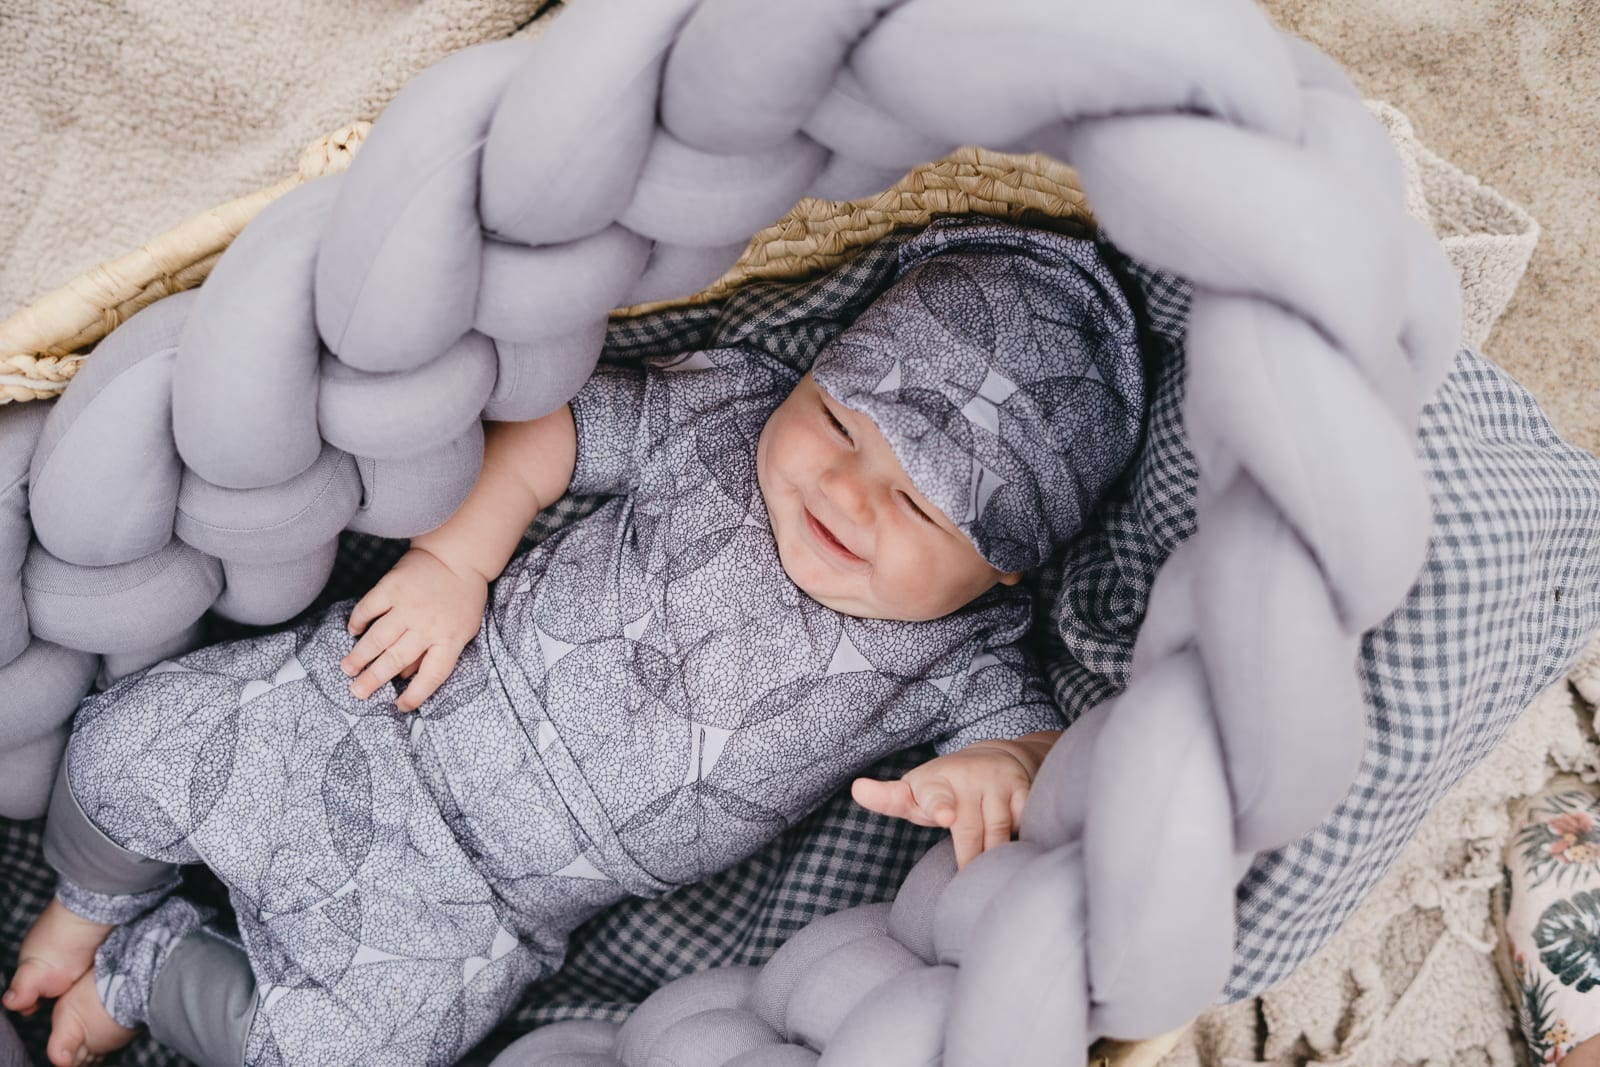 Monochrome unisex baby outfit with dark leaf print for girl or boy